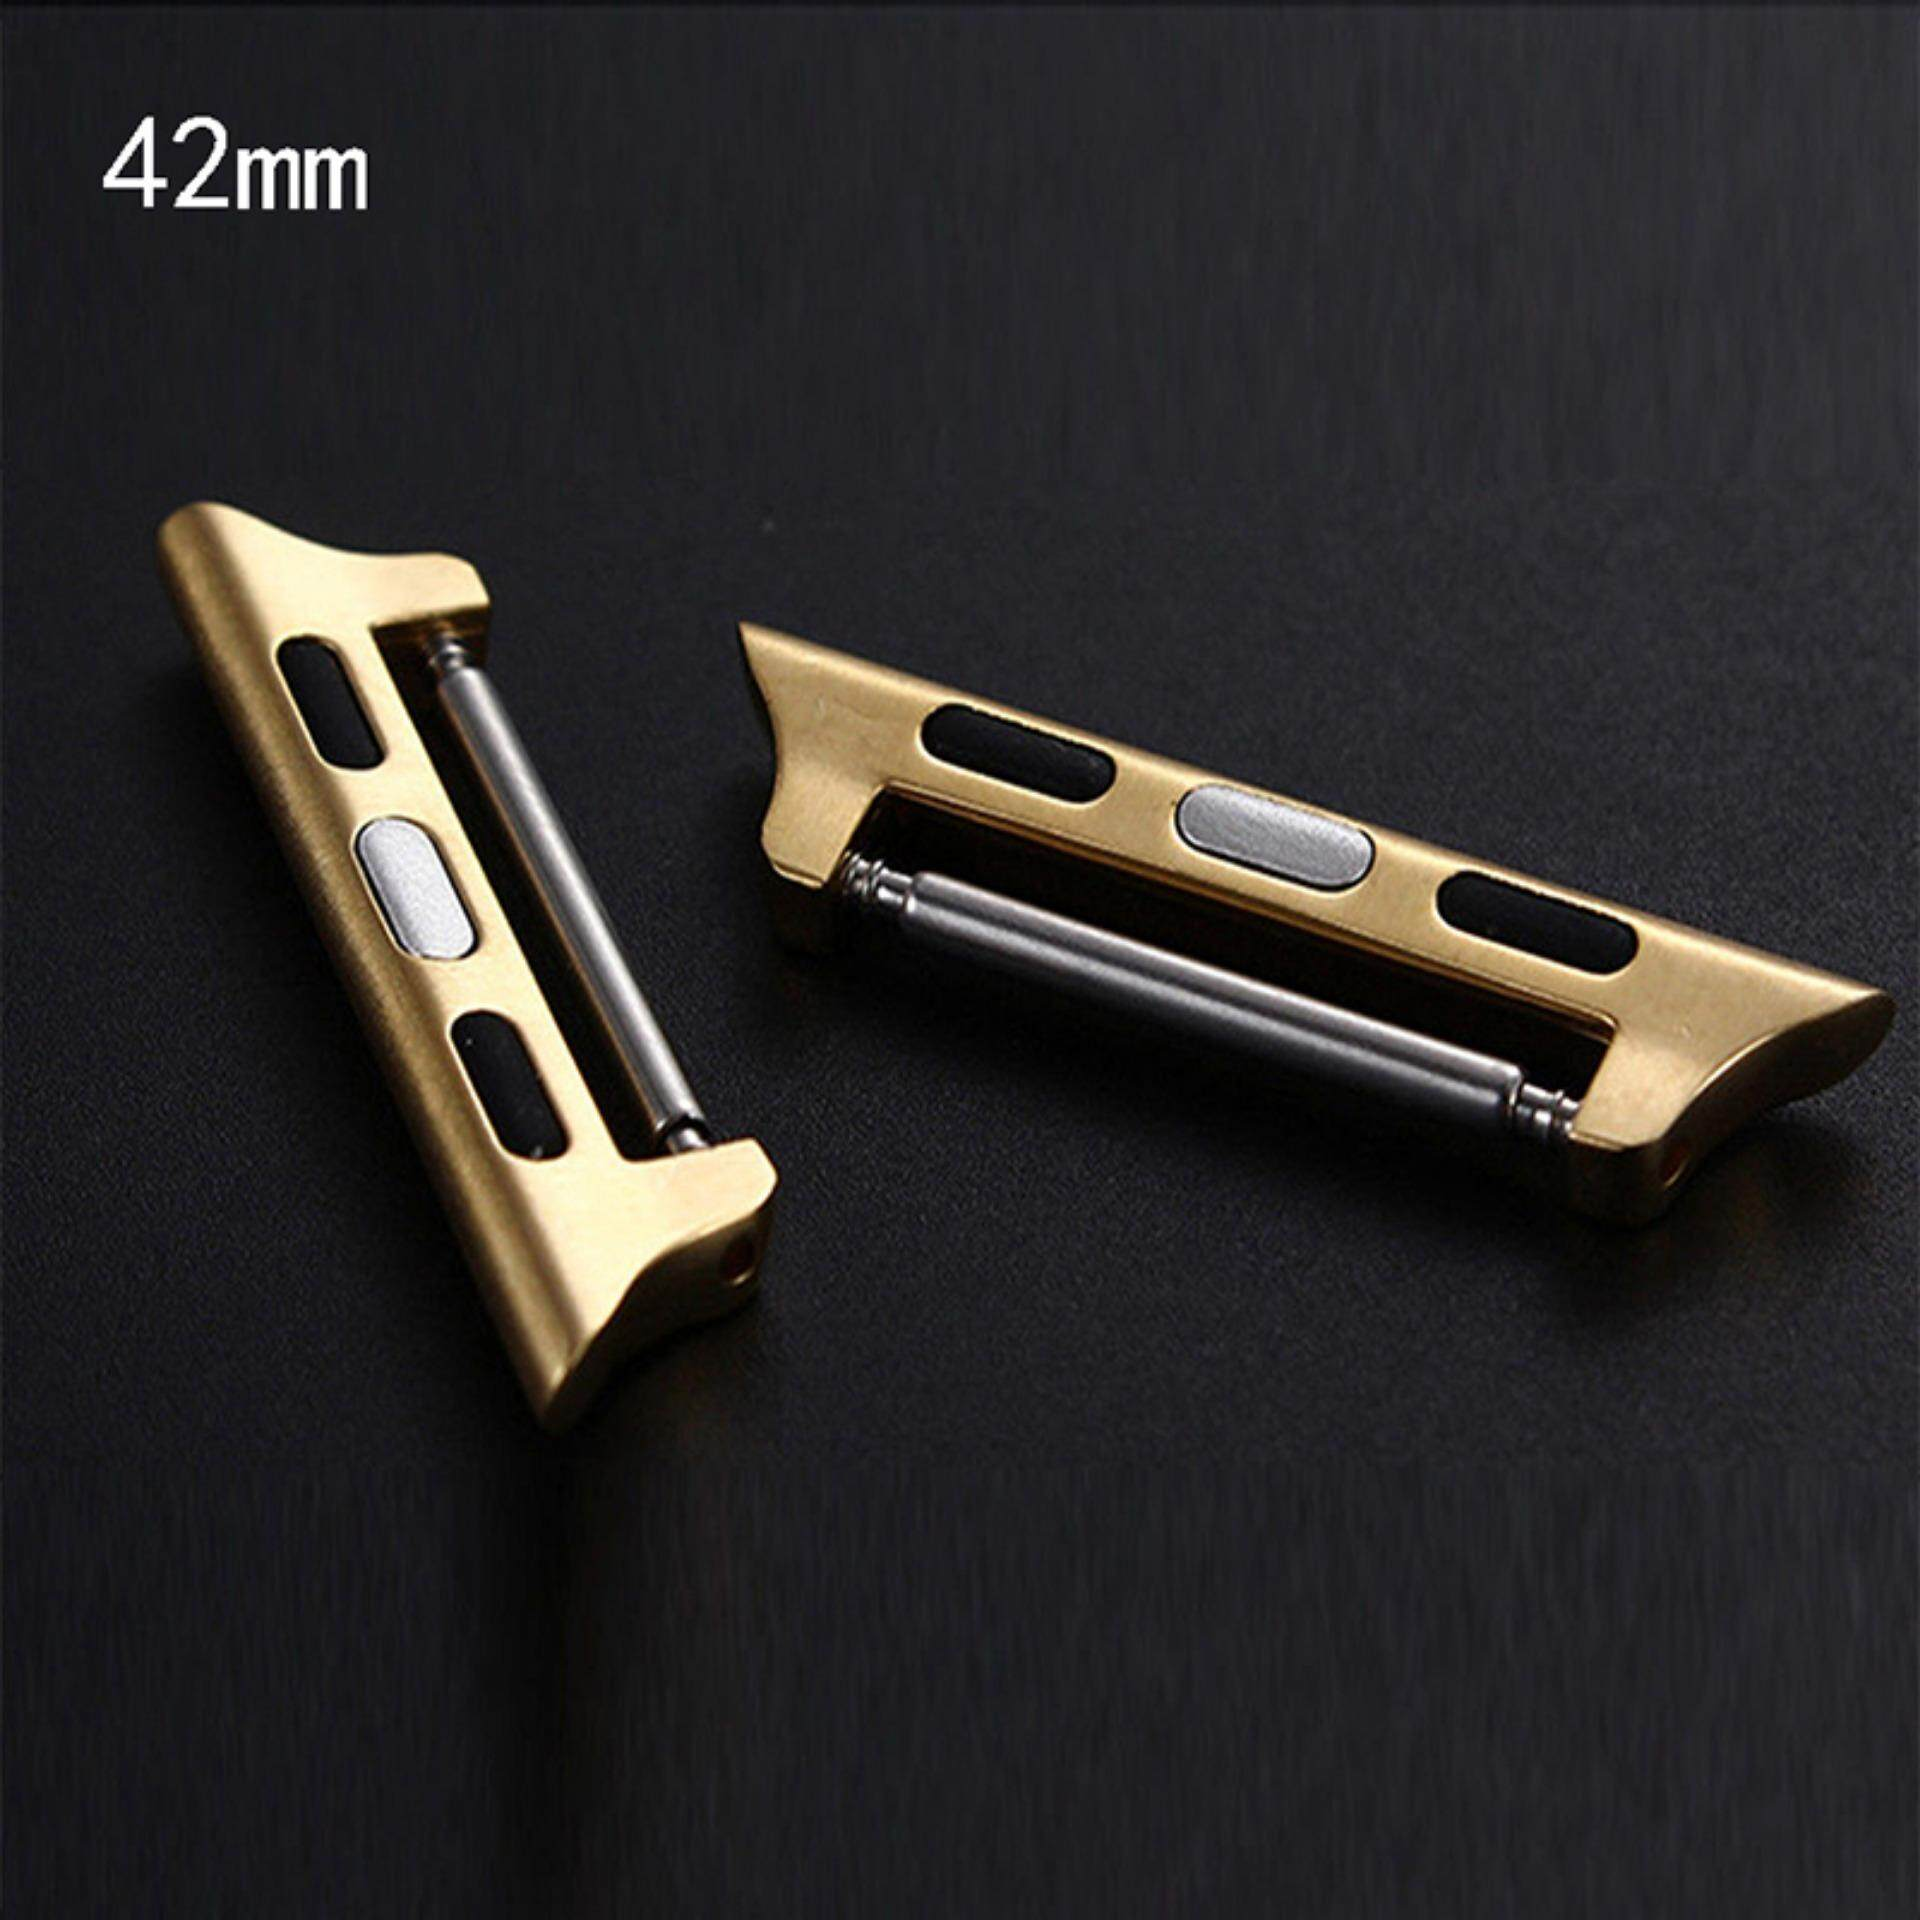 Hình ảnh For Apple Watch IWatch Band Adapter Kits Watchband Strap Connection 38mm 42mm Gold 42mm